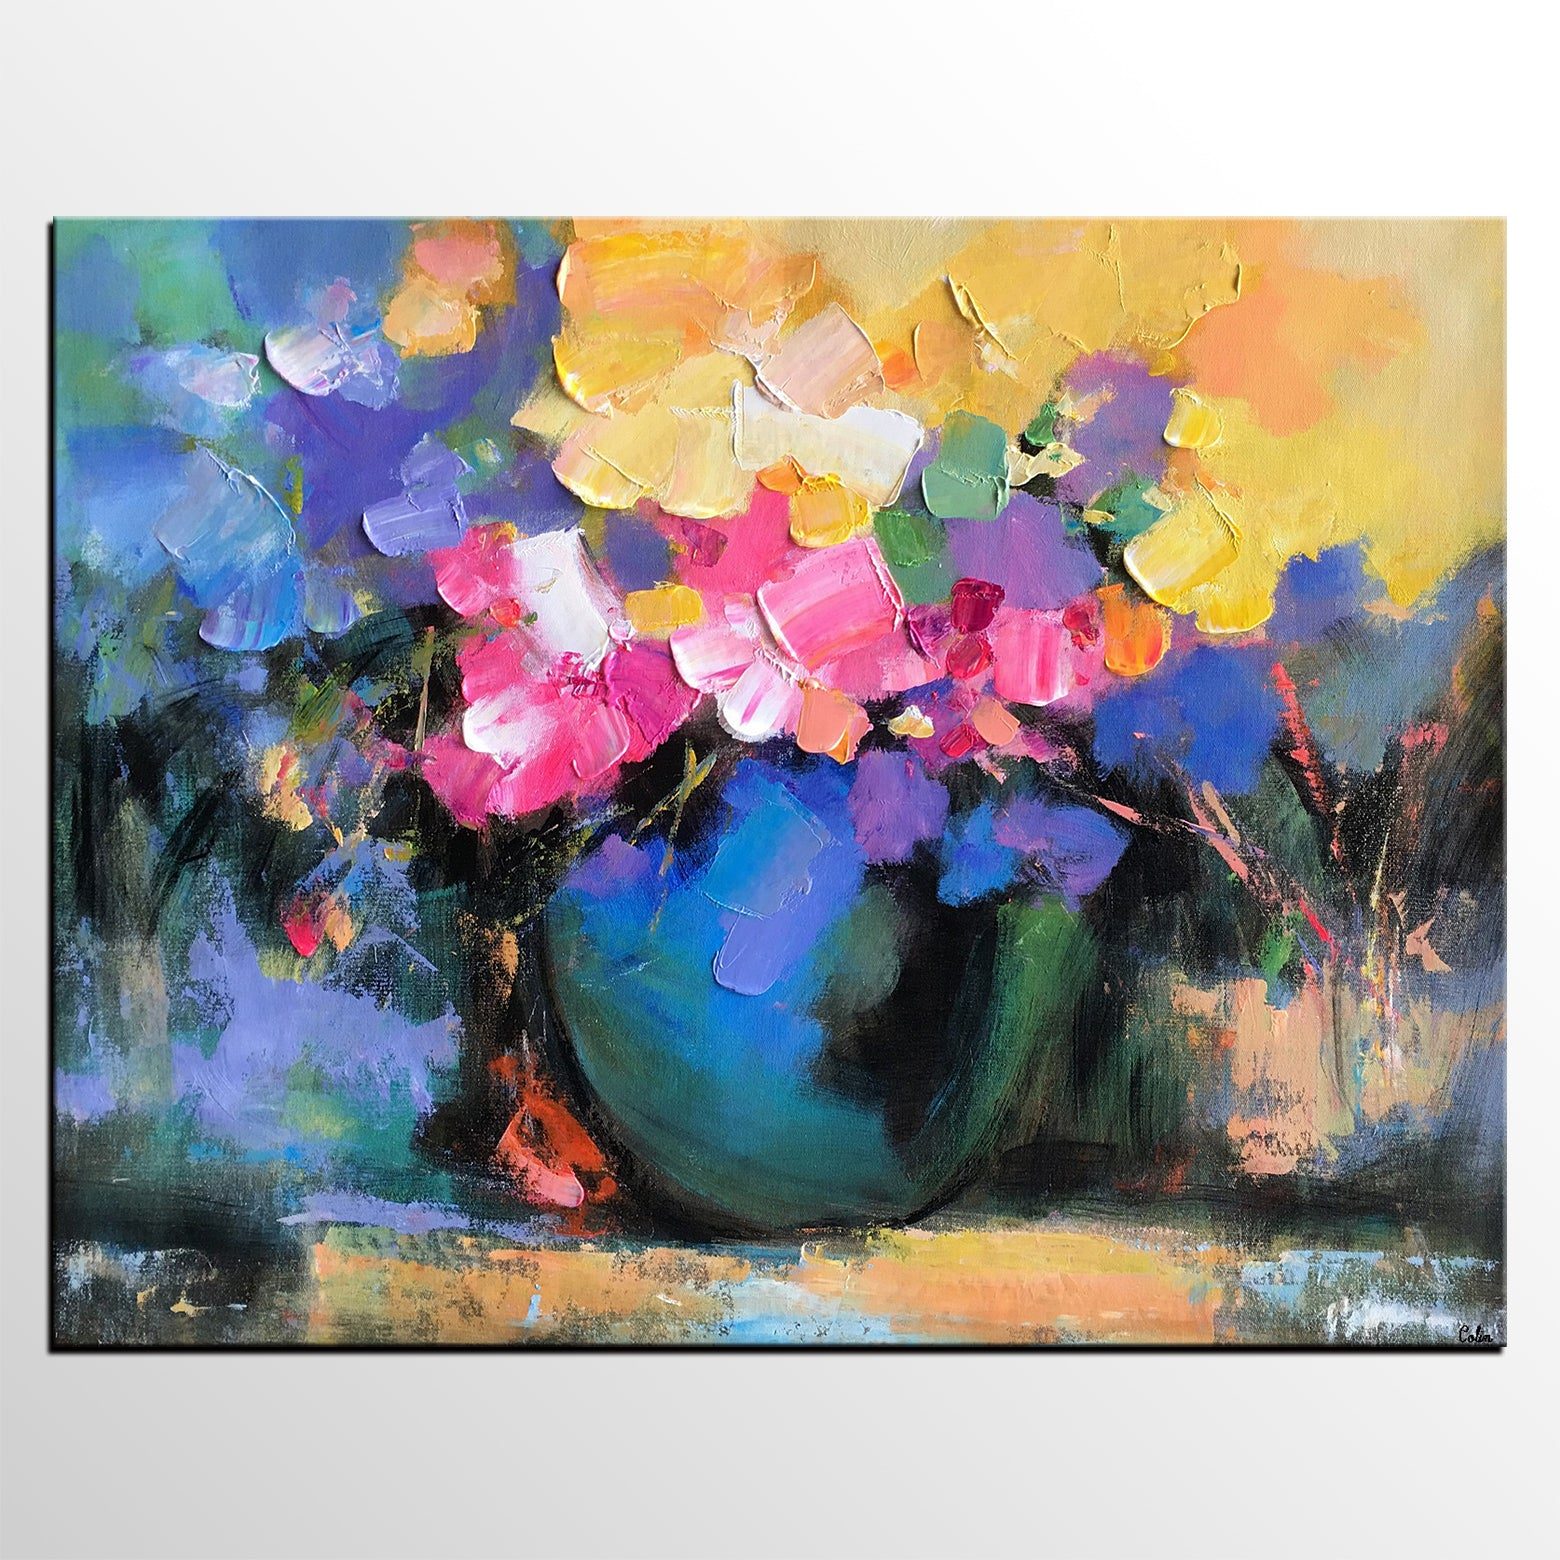 Abstract Art Painting, Flower in Vase Painting, Original Painting, Large Wall Art, Canvas Painting - artworkcanvas